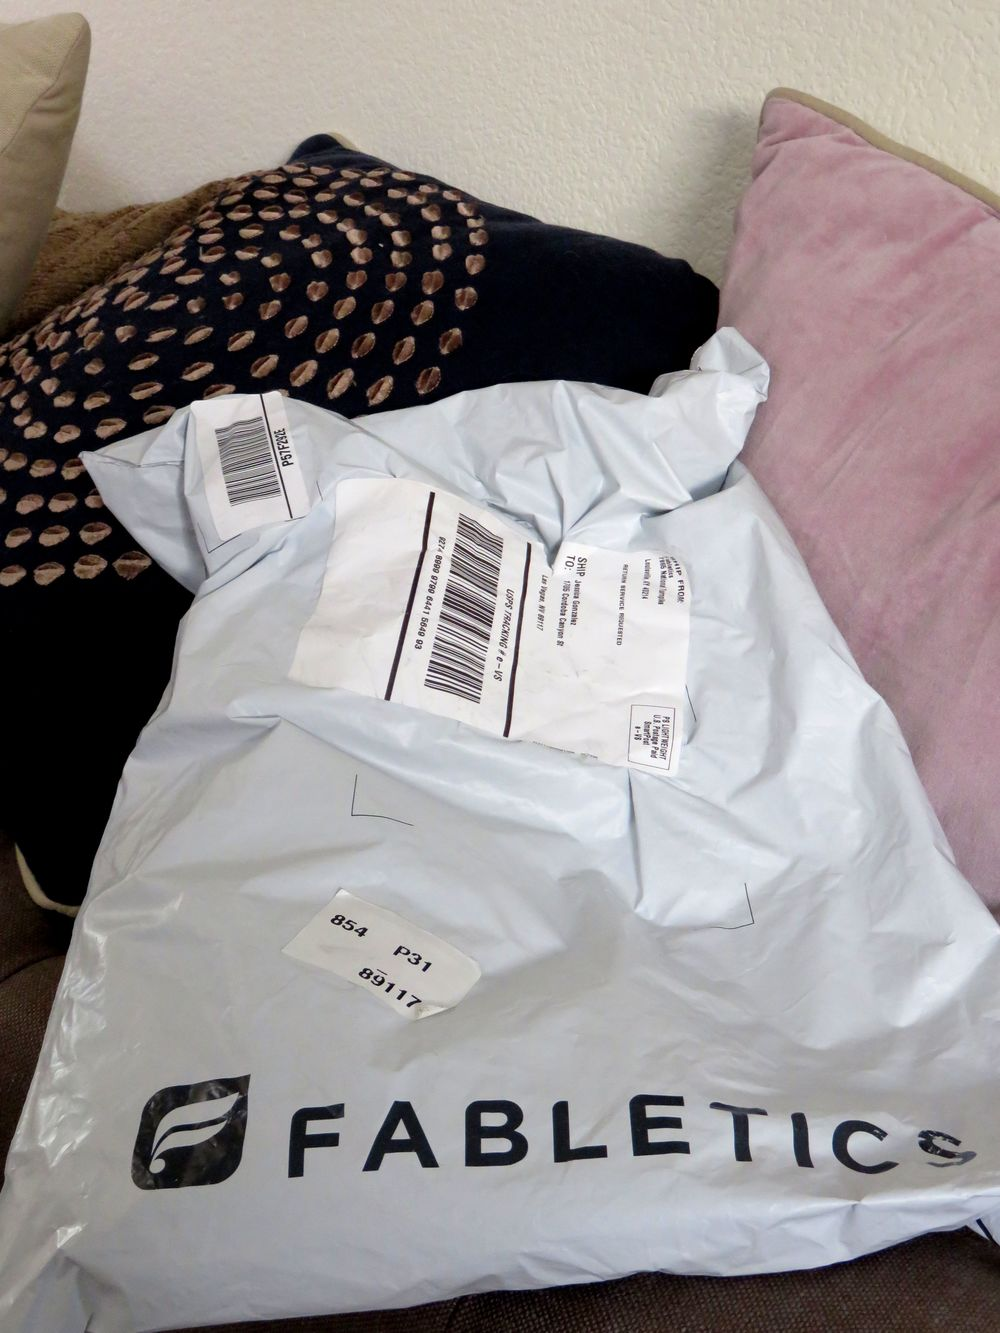 Fabletics_Costs.jpg